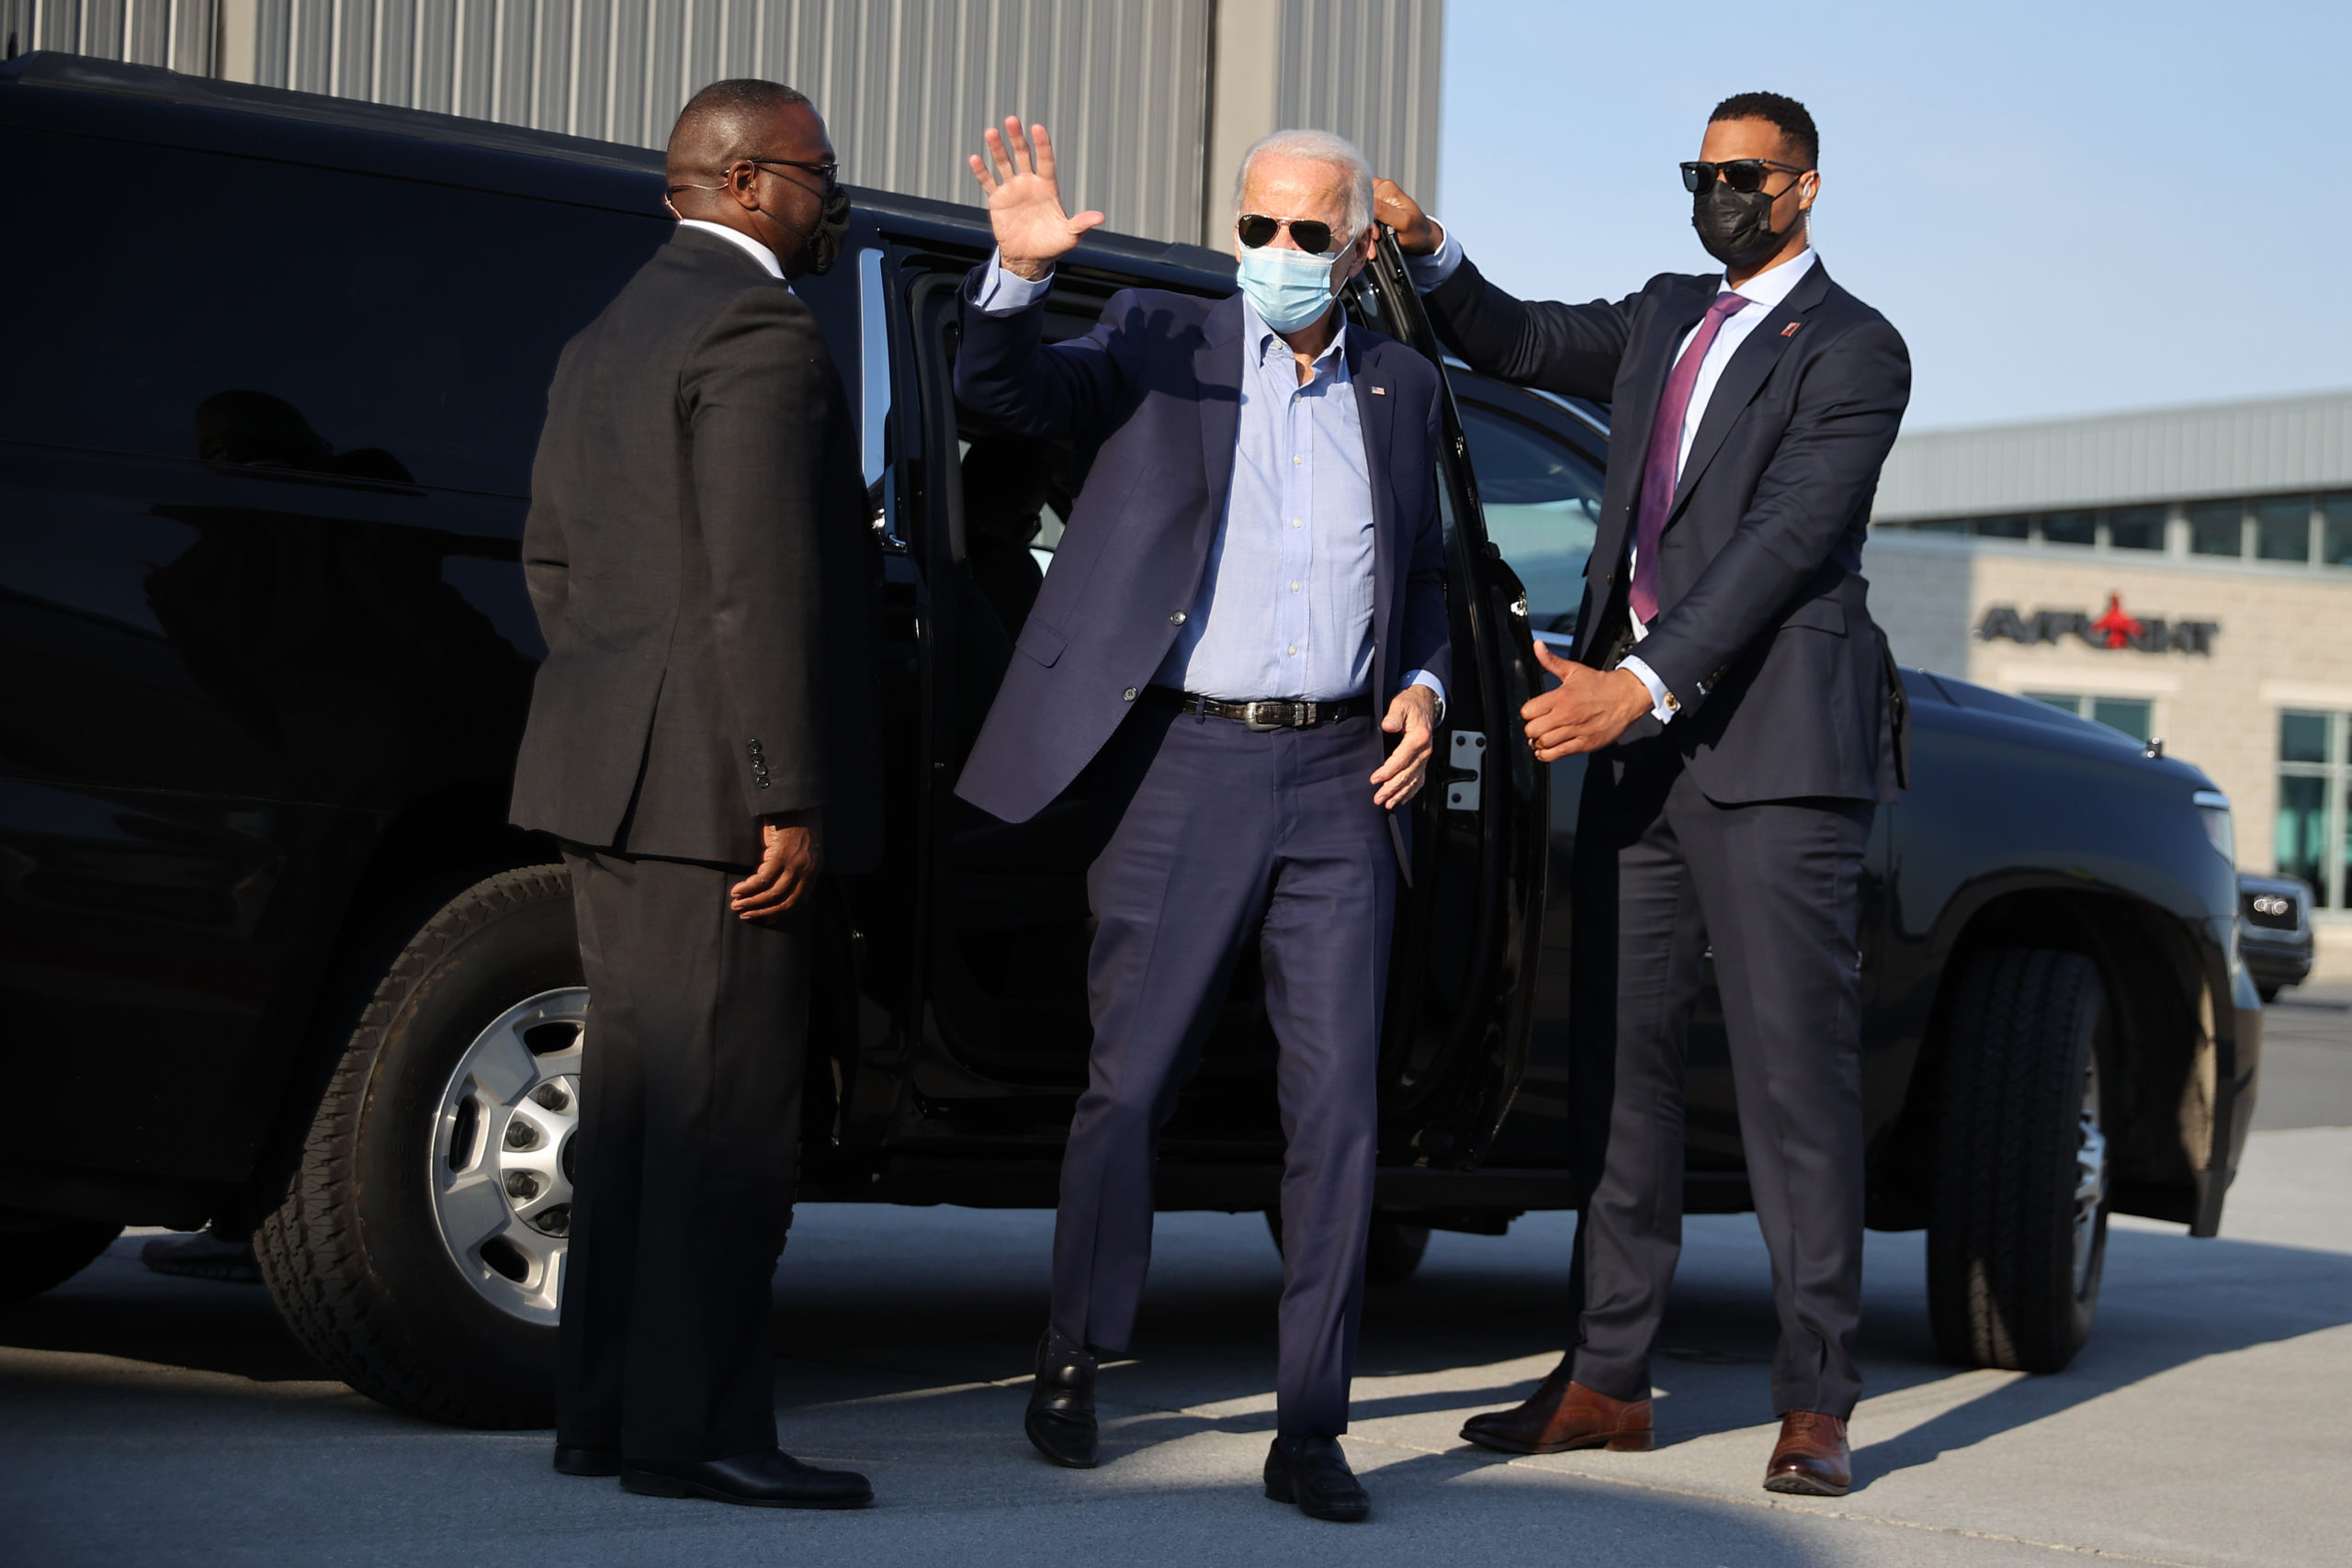 MIDDLETOWN, PENNSYLVANIA - SEPTEMBER 07: Wearing a face mask to reduce the risk posed by the coronavirus, Democratic presidential candidate and former Vice President Joe Biden prepares to board an airplane after meeting with local labor leaders at the state's AFL-CIO headquarters on Labor Day, September 07, 2020 in Middletown, Pennsylvania. Due to the ongoing coronavirus pandemic, Biden's campaign has organized more virtual events, engaging with supporters using video teleconferencing. (Photo by Chip Somodevilla/Getty Images)